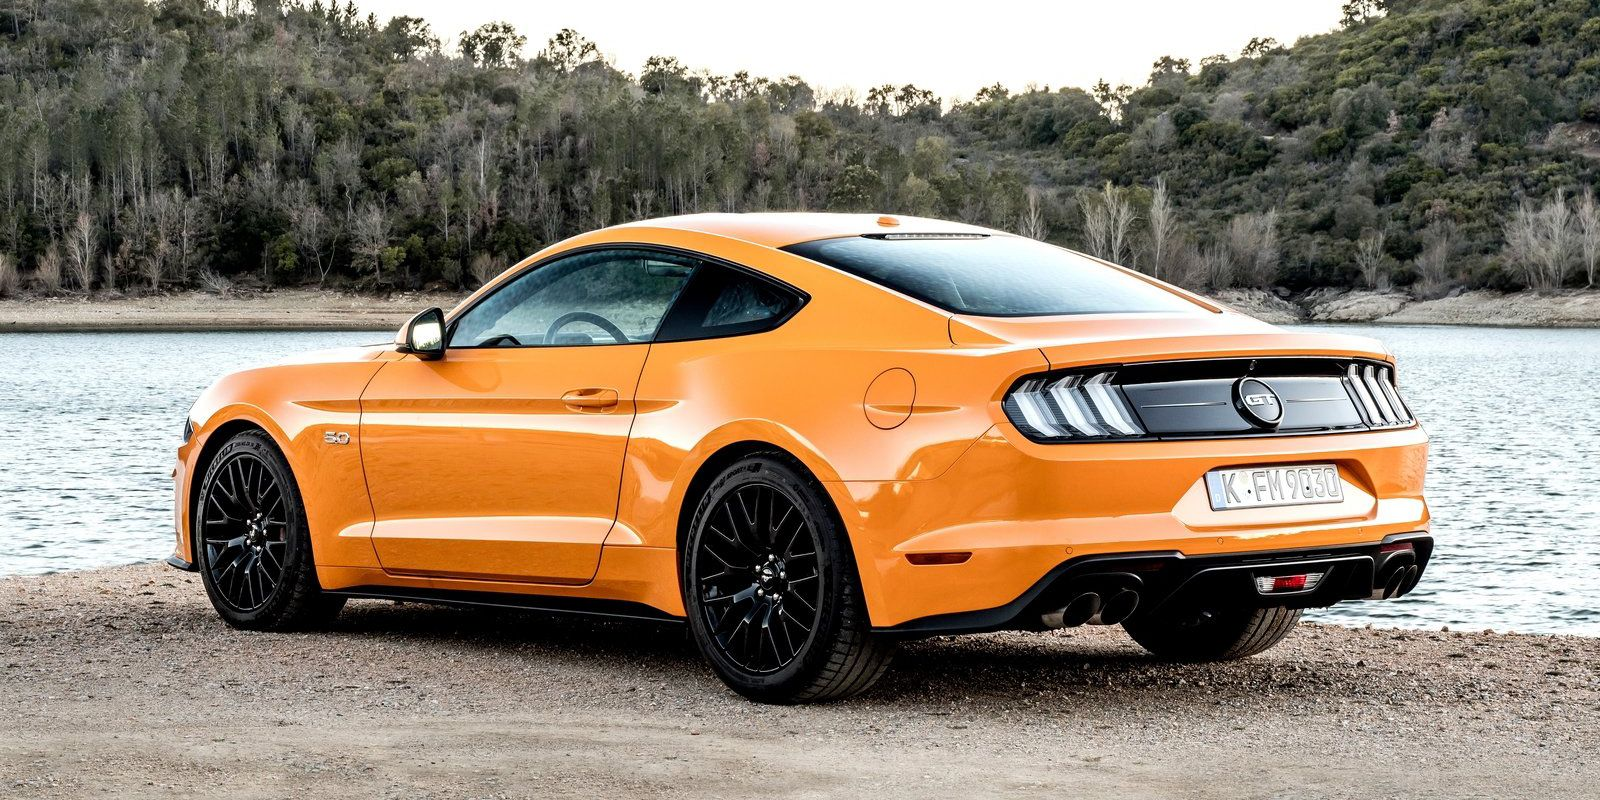 All the cool tech in the 2018 mustang gts 5 0 liter v8